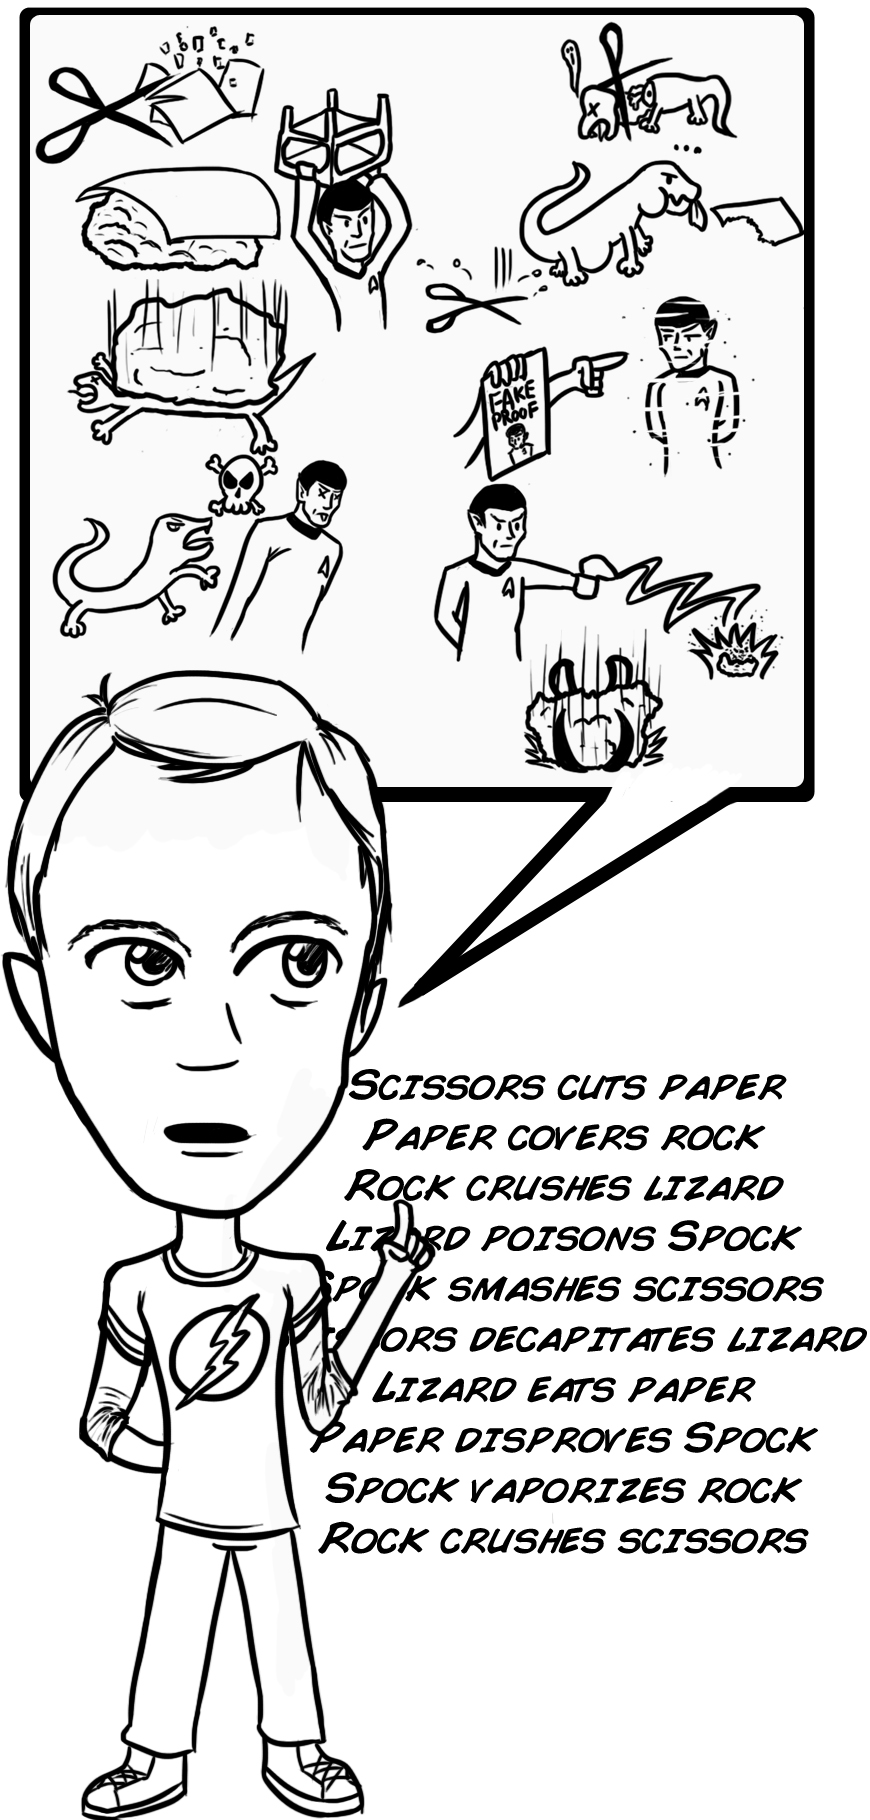 Sheldon Cooper Rock Paper Scissors Lizard Spock Images Filerock Spockjpg Wikimedia Commons By Kirati On